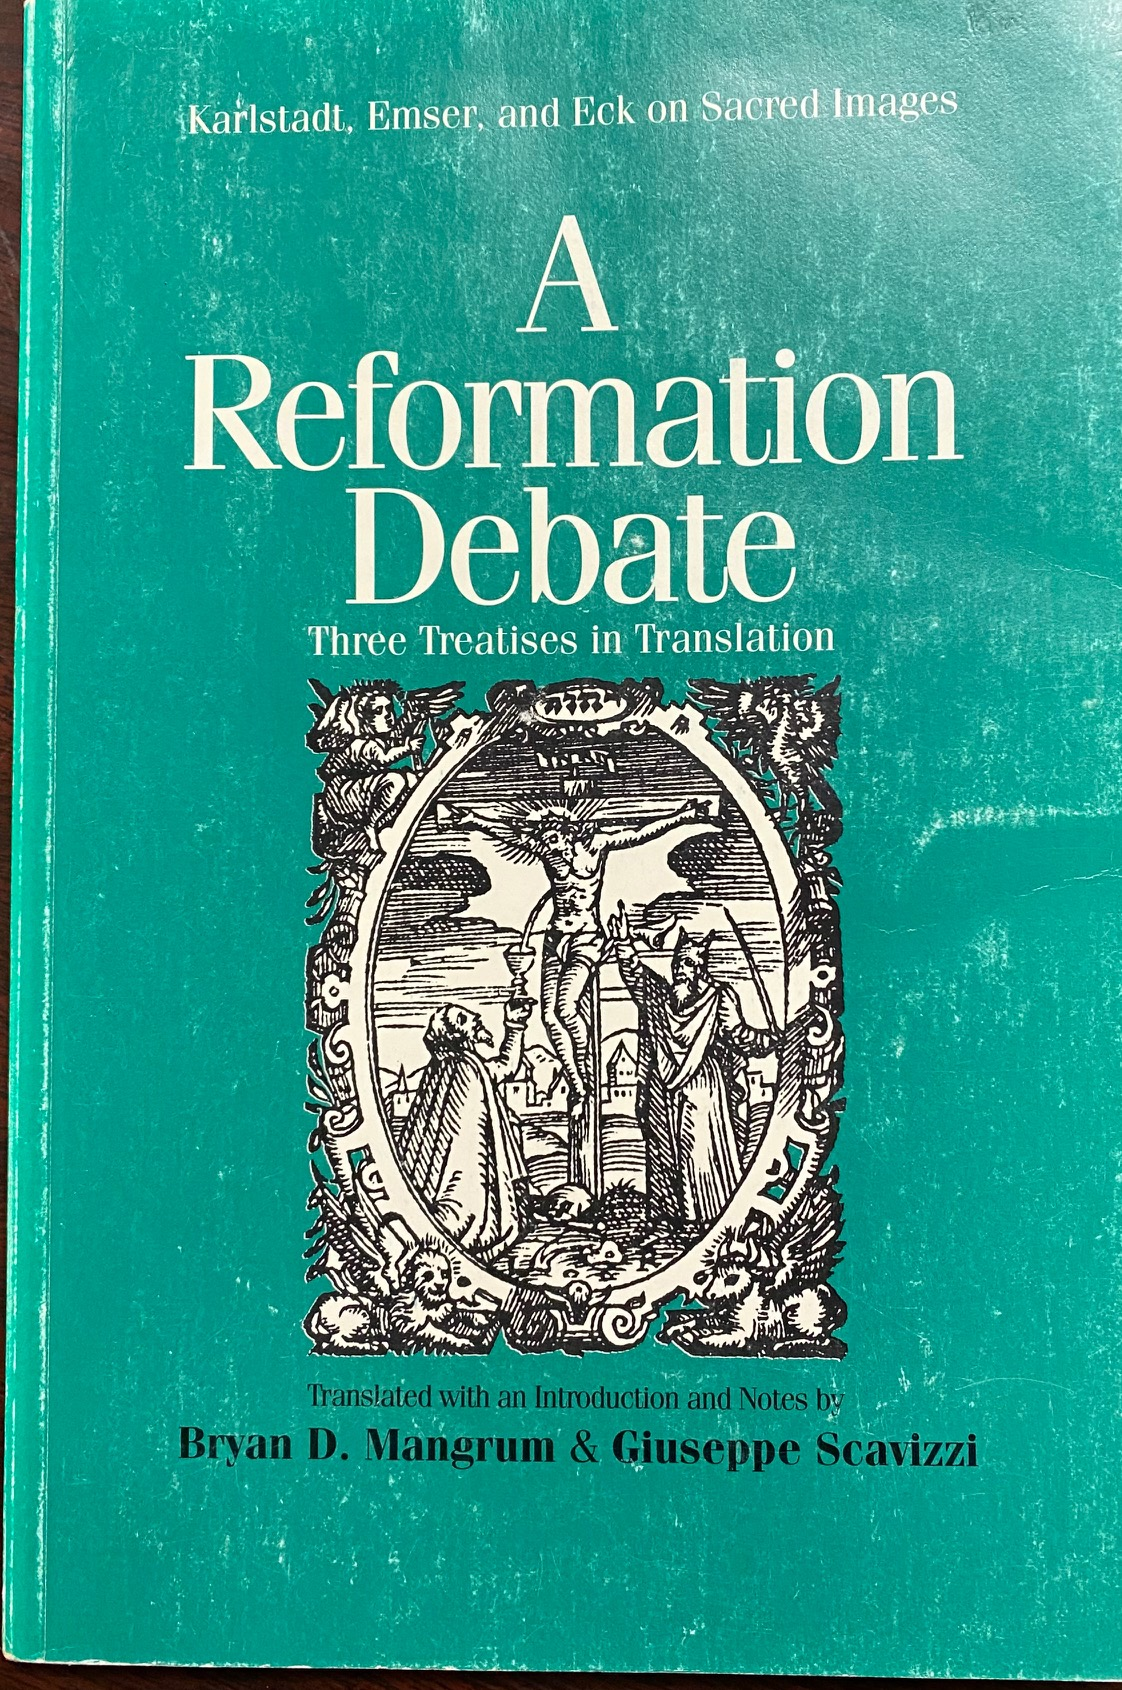 Image for A Reformation Debate: Karlstadt, Emser, and Eck on Sacred Images: Three Treatises in Translation (Renaissance and Reformation Texts in Translation, 5)